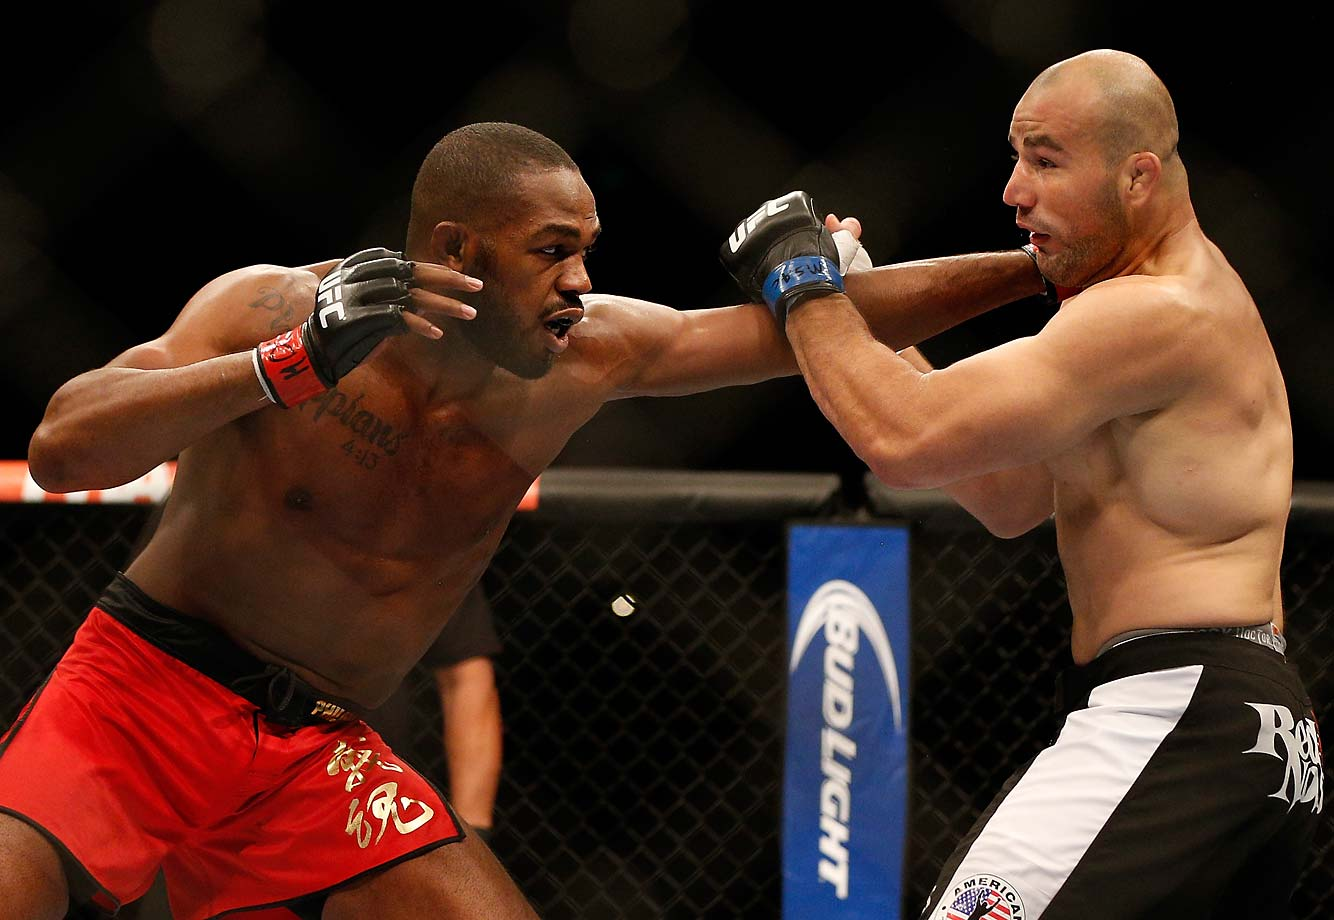 Jones tags Glover Teixeira with a straight left.